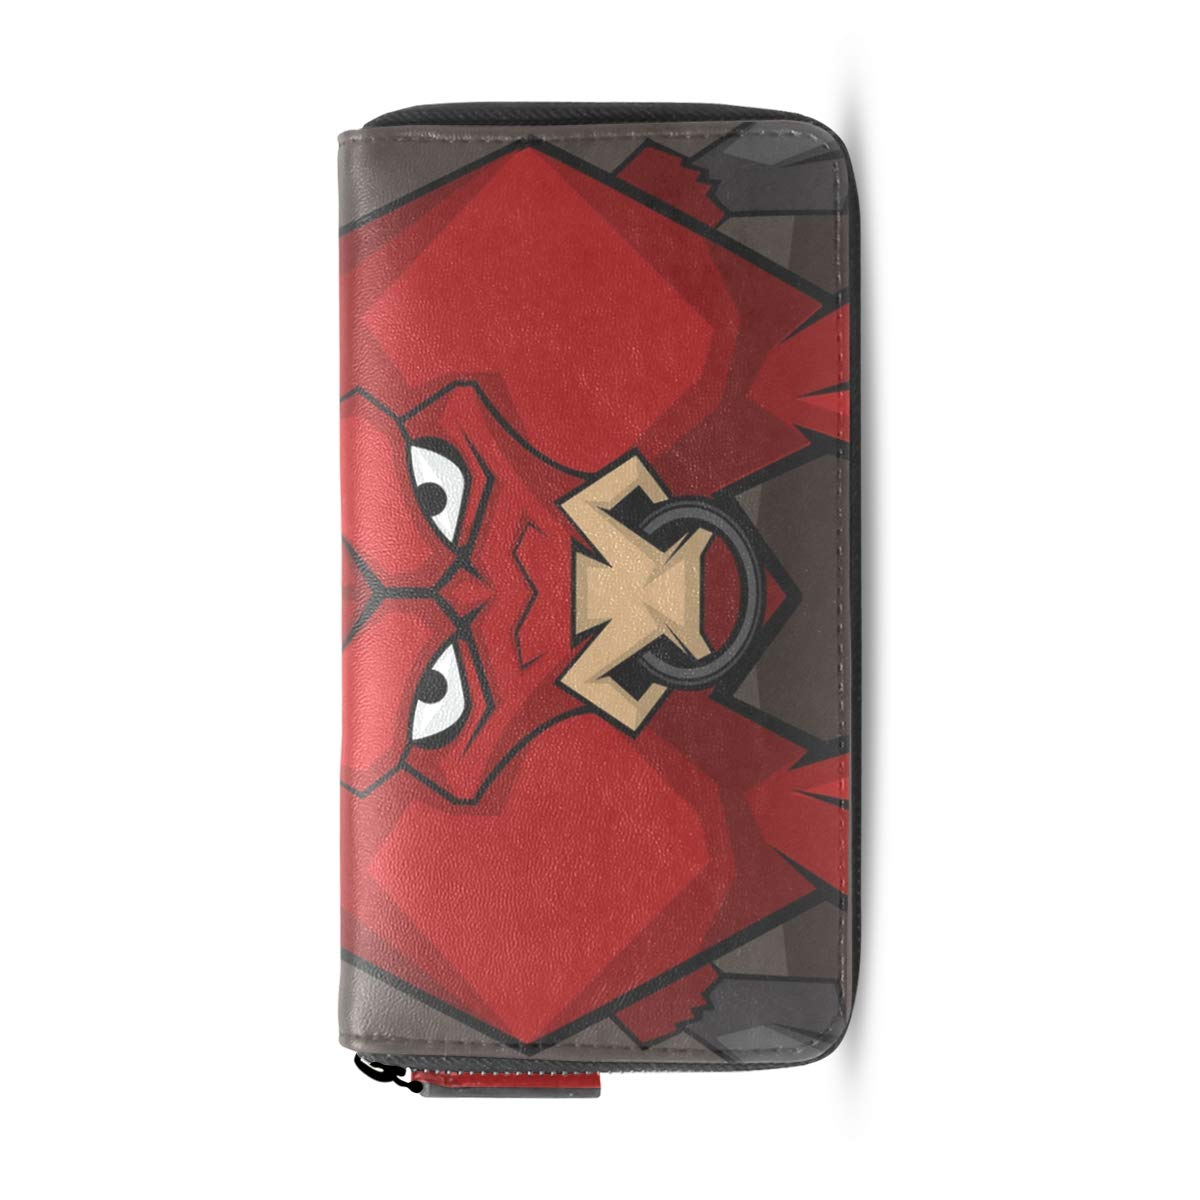 Amazon.com: Clutch Cartera Bolso Devil Red Bull Largo ...